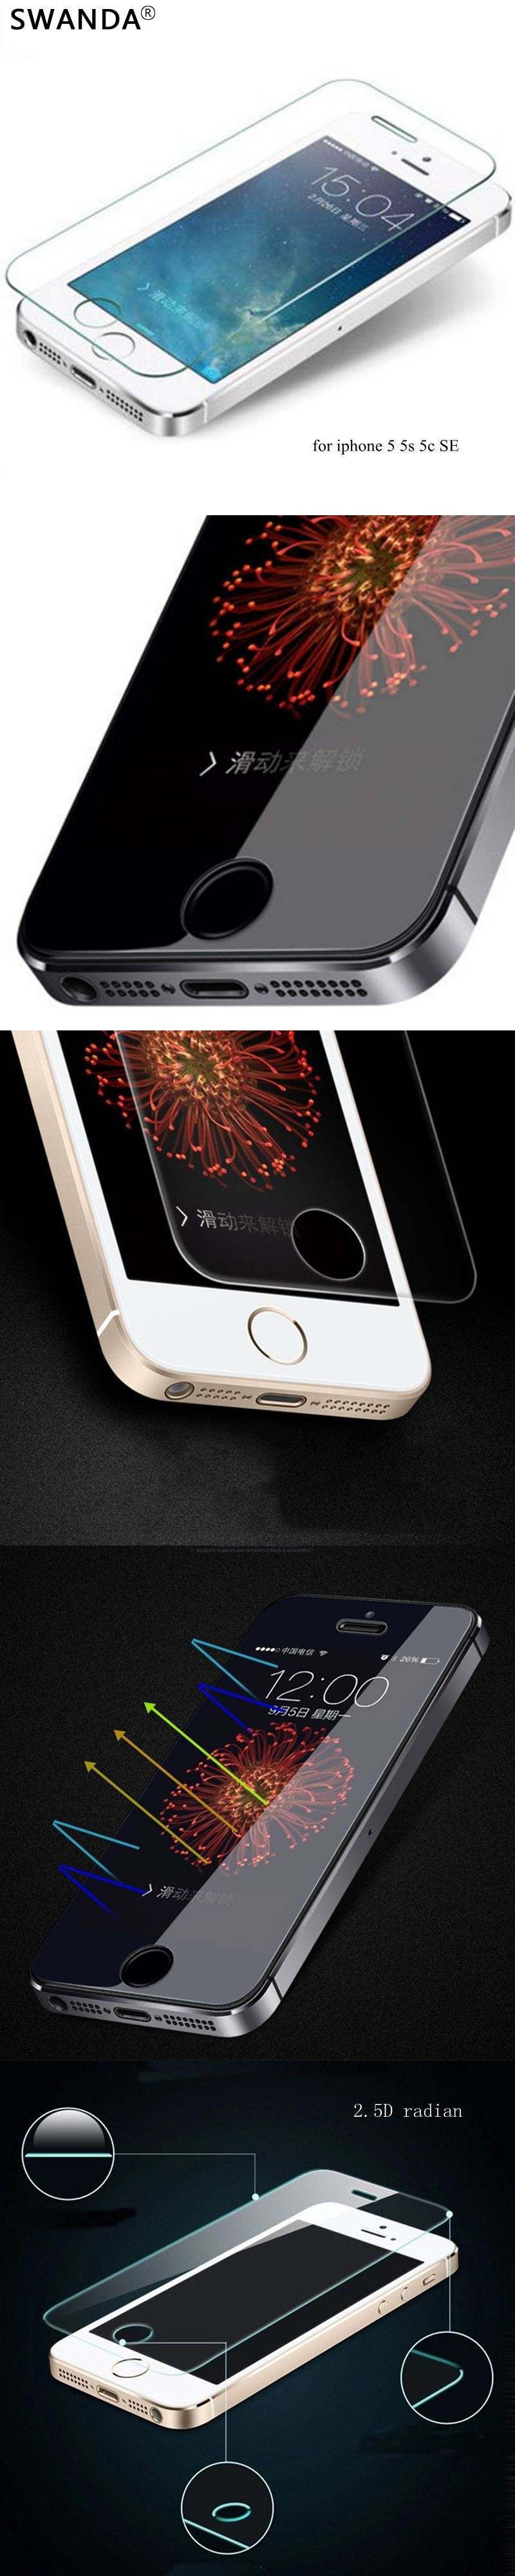 tempered glass on the for iPhone 5s glass HD clear screen hardness tempered glass for iphone